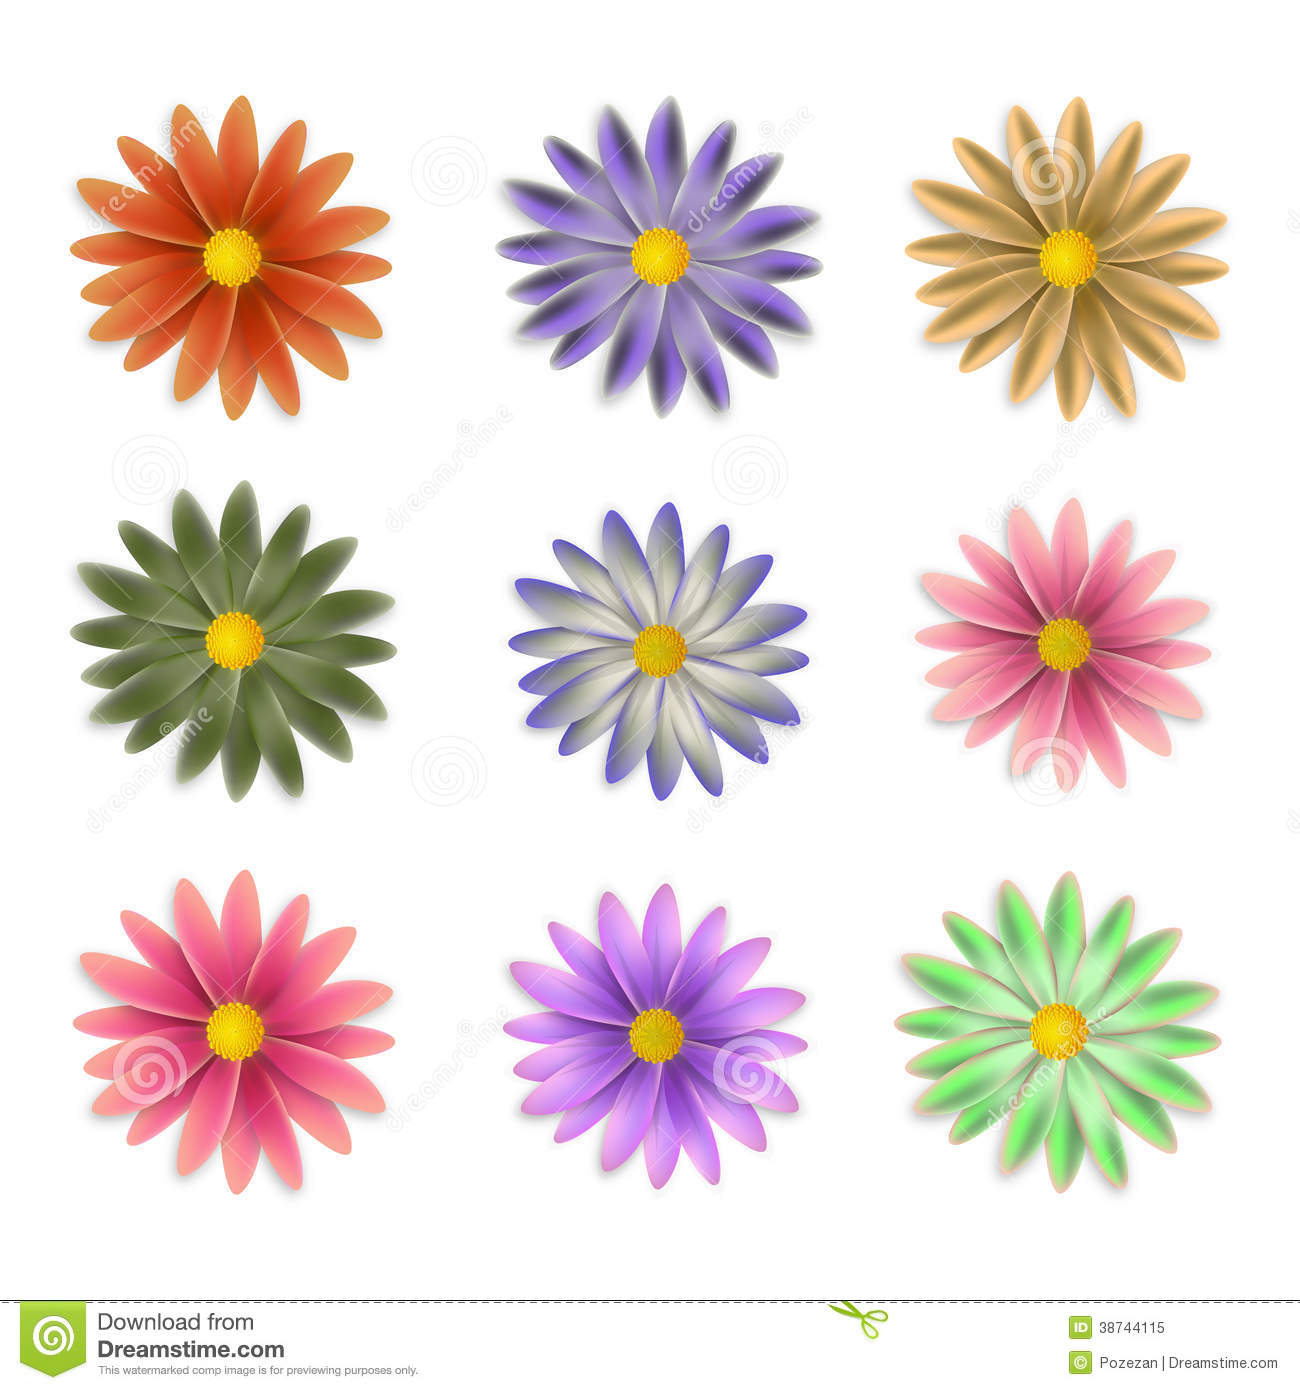 Flowers of different colors royalty free stock photo for What makes flowers different colors